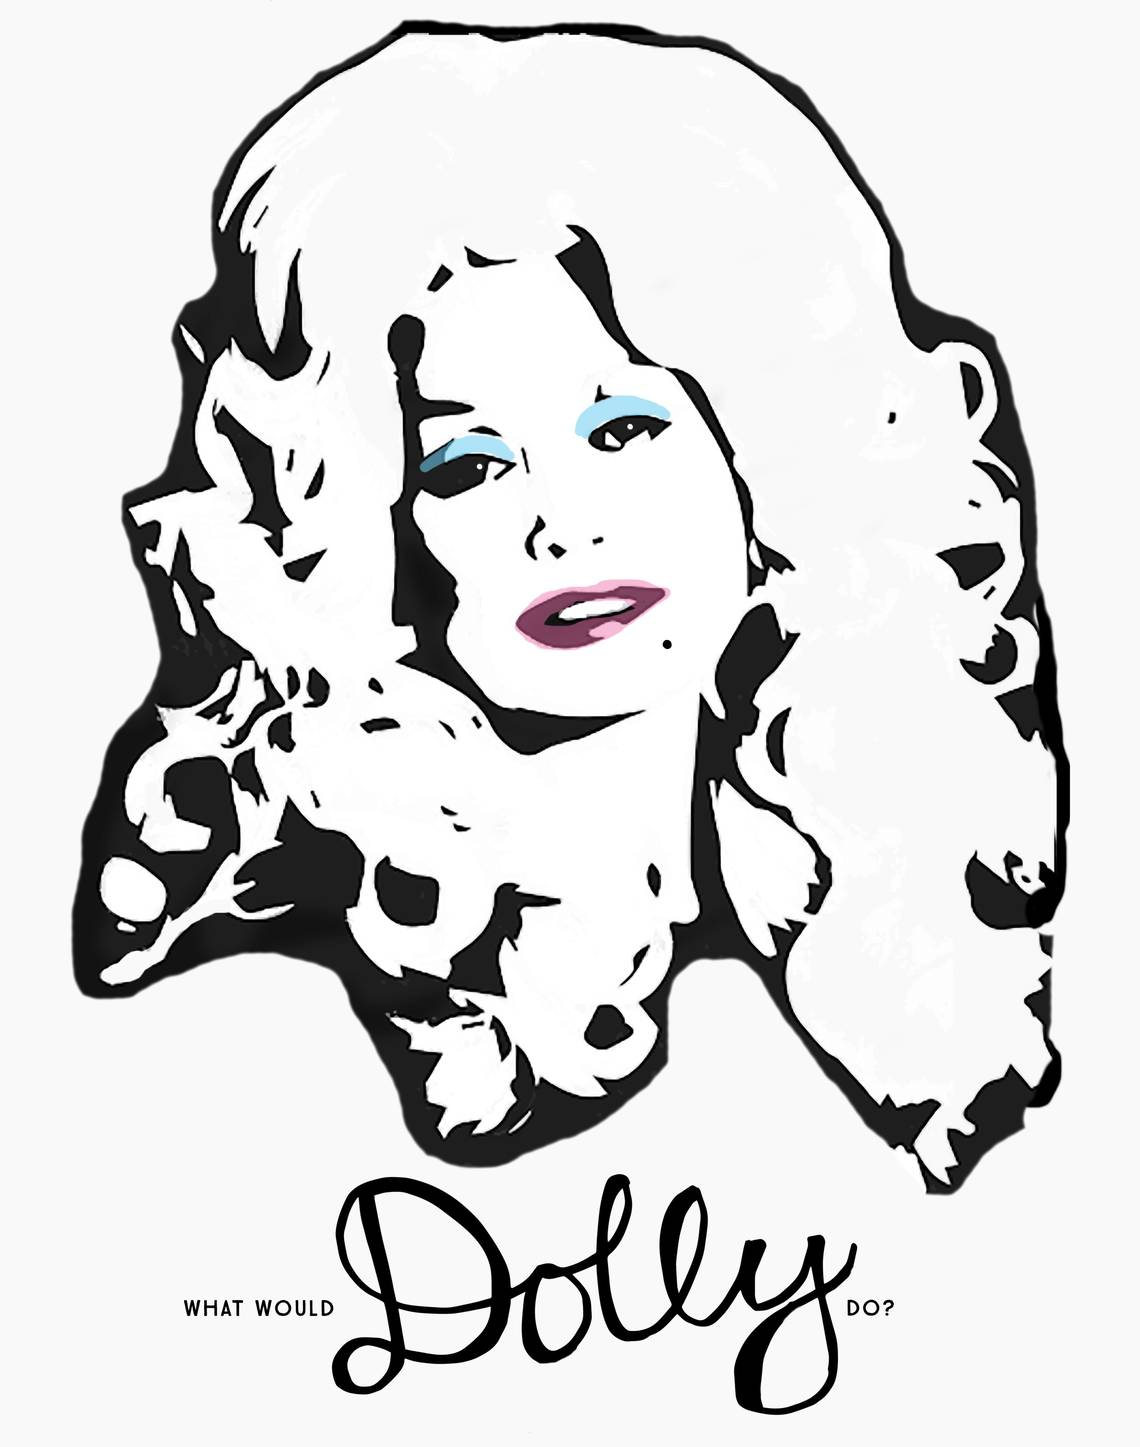 Dolly parton clipart 3 » Clipart Station.